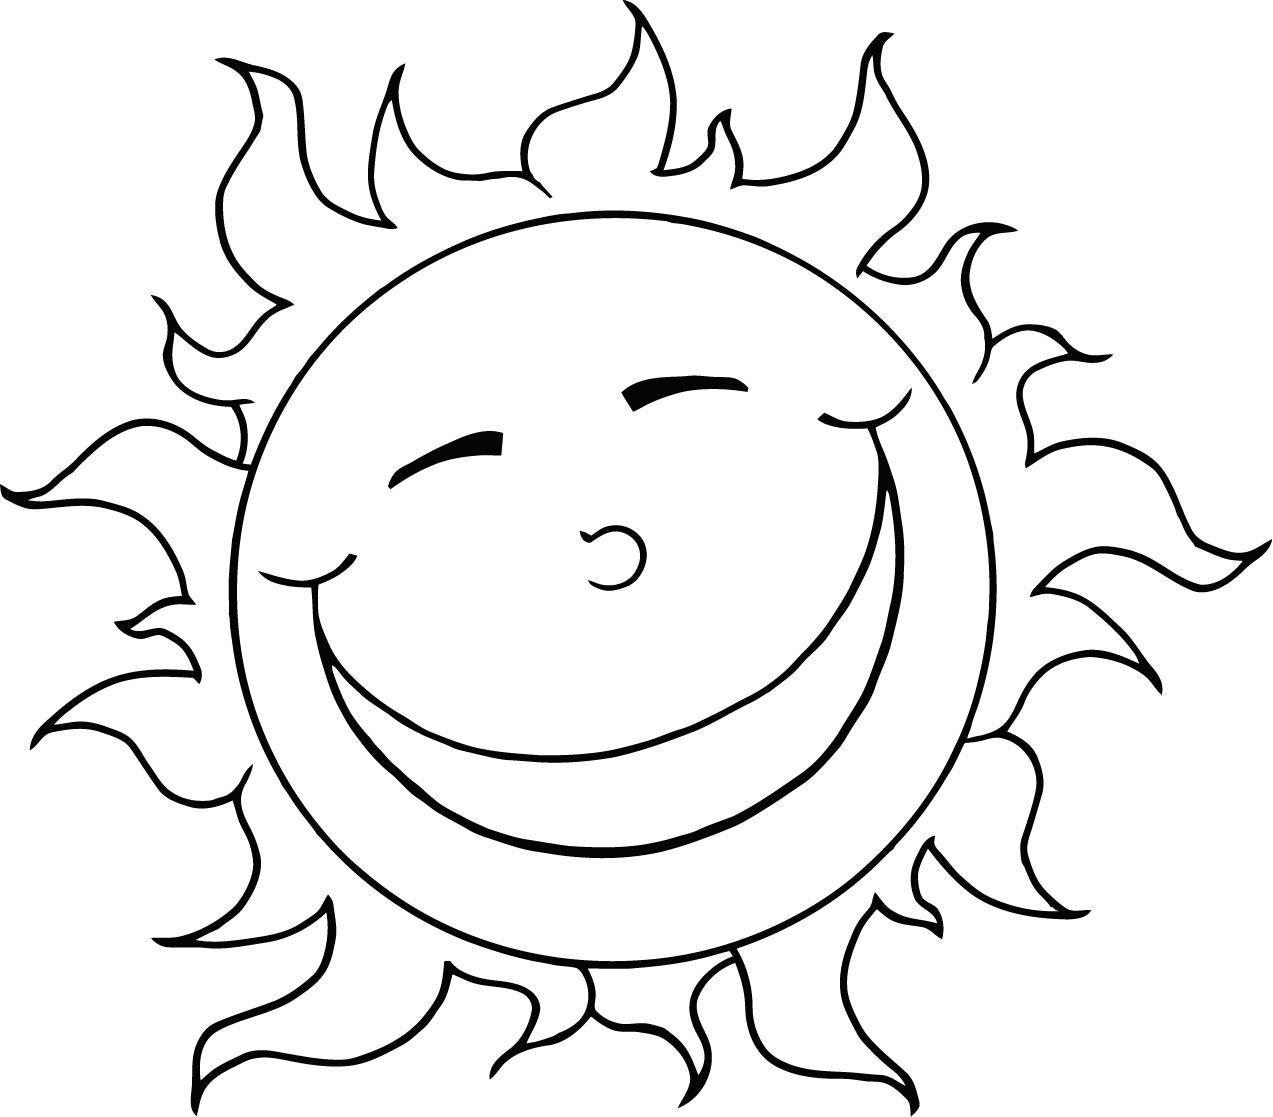 1273x1117 Sun Coloring Pages To Download And Print For Free